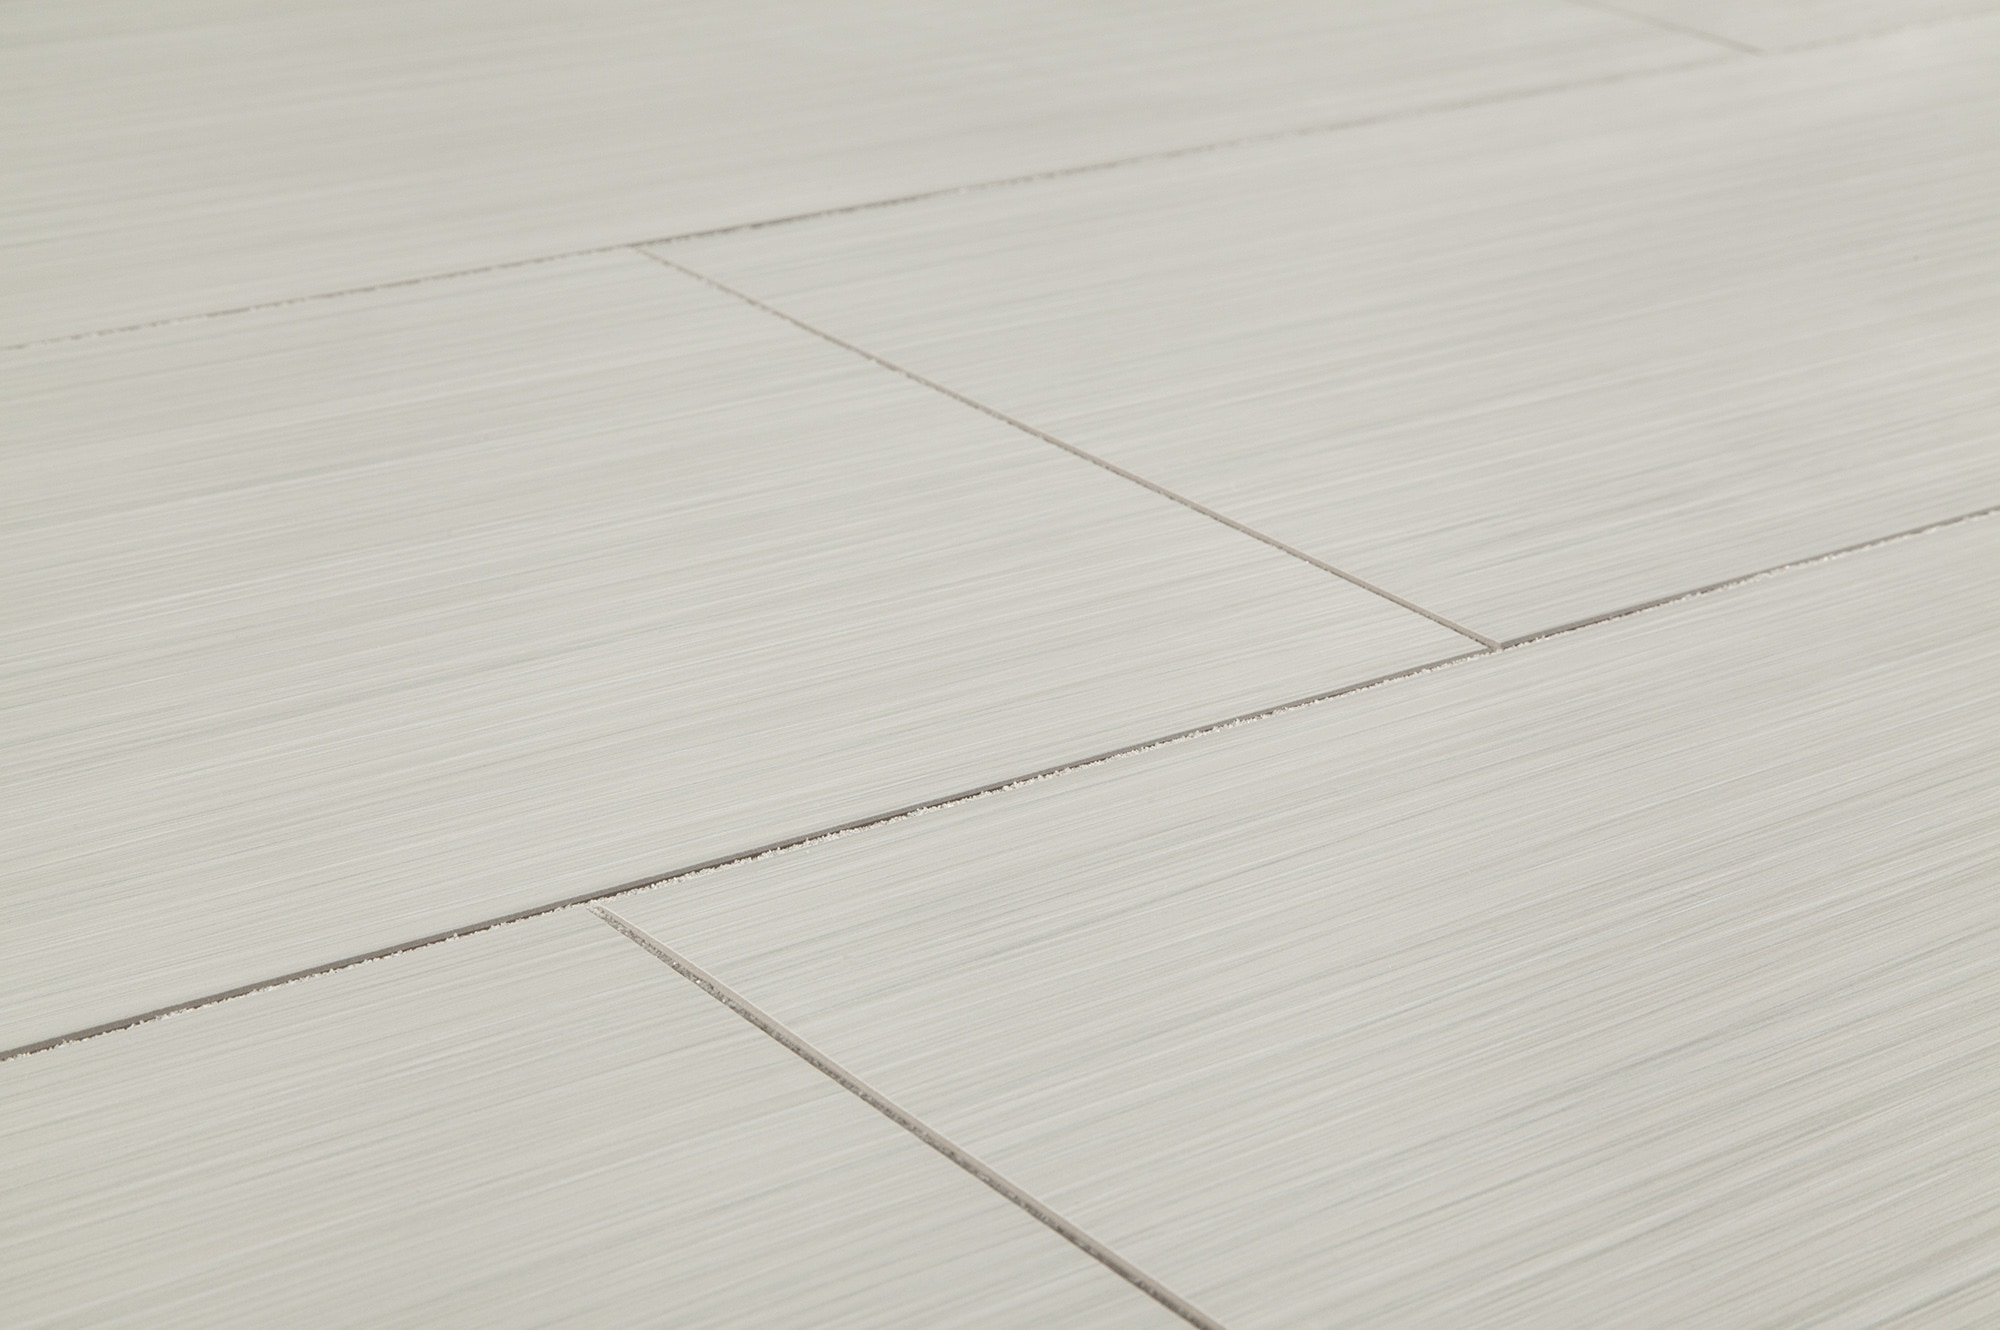 white porcelain tile floor. White Porcelain Tile Floor I